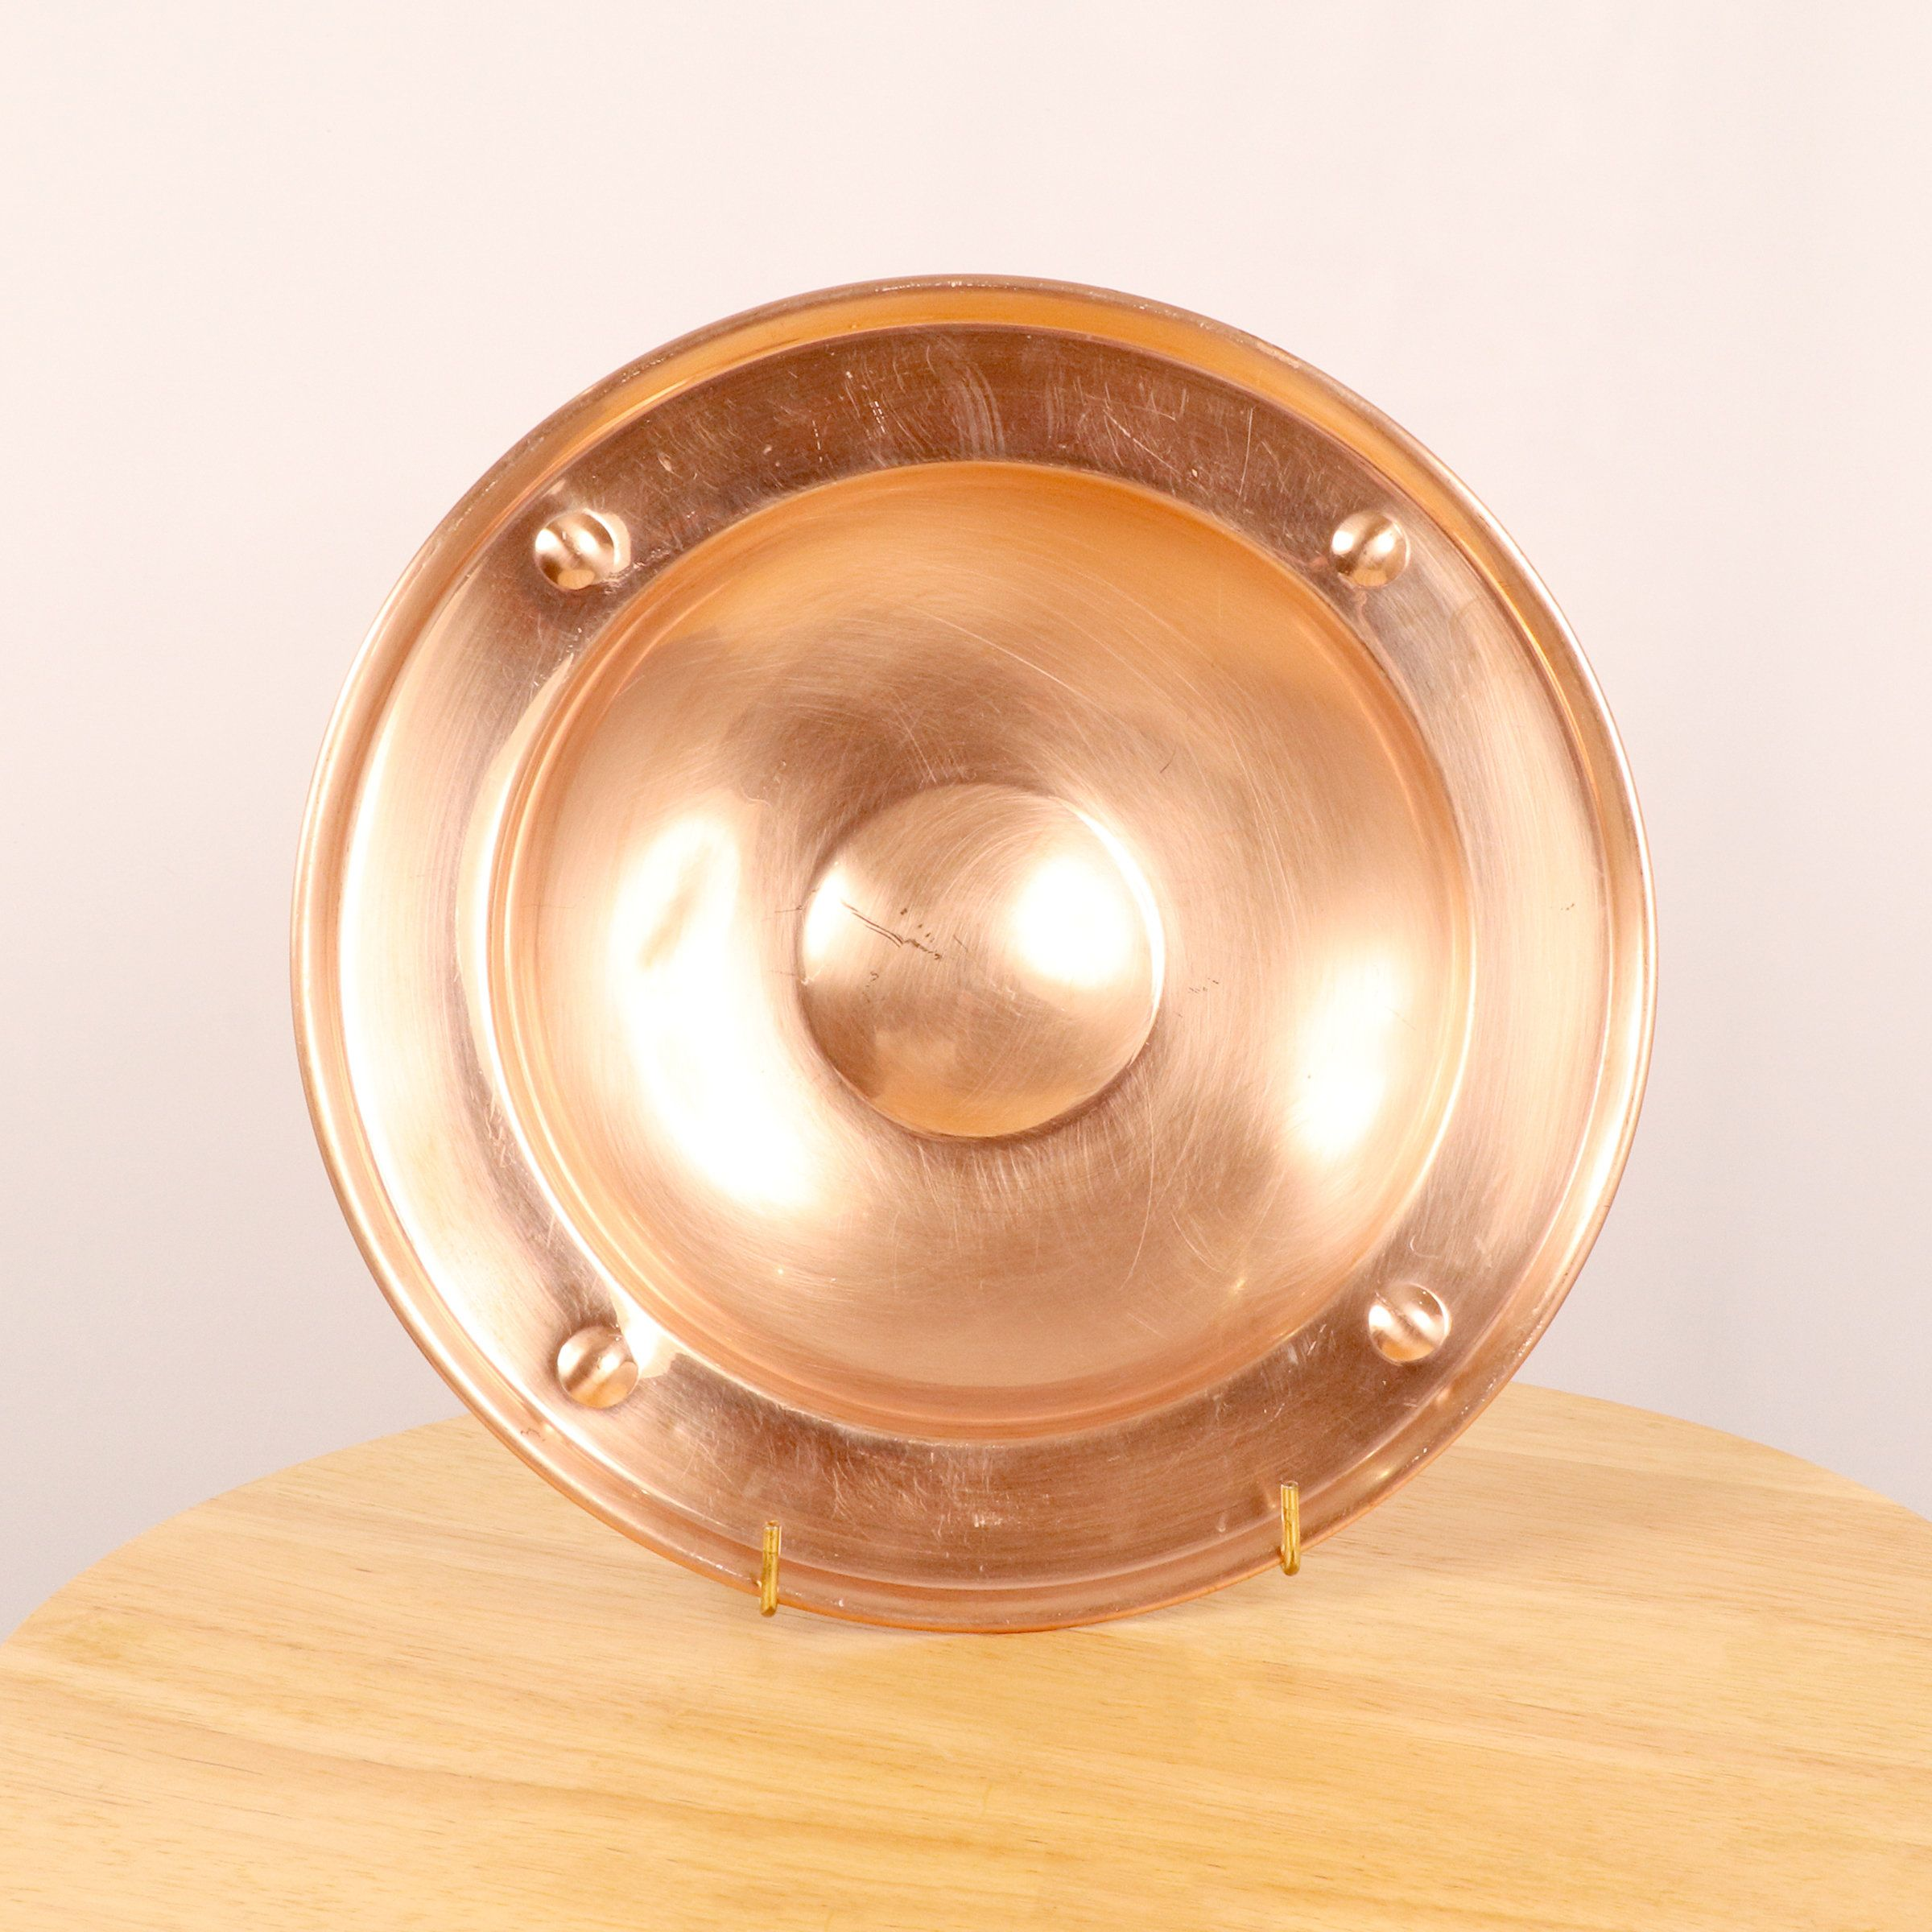 27 Cm Plate Tray Bowl Vintage Copper Tray Trade Mark Linton Made In England By Ukamobile On Etsy In 2020 Vintage Copper Copper Tray Vintage Plates